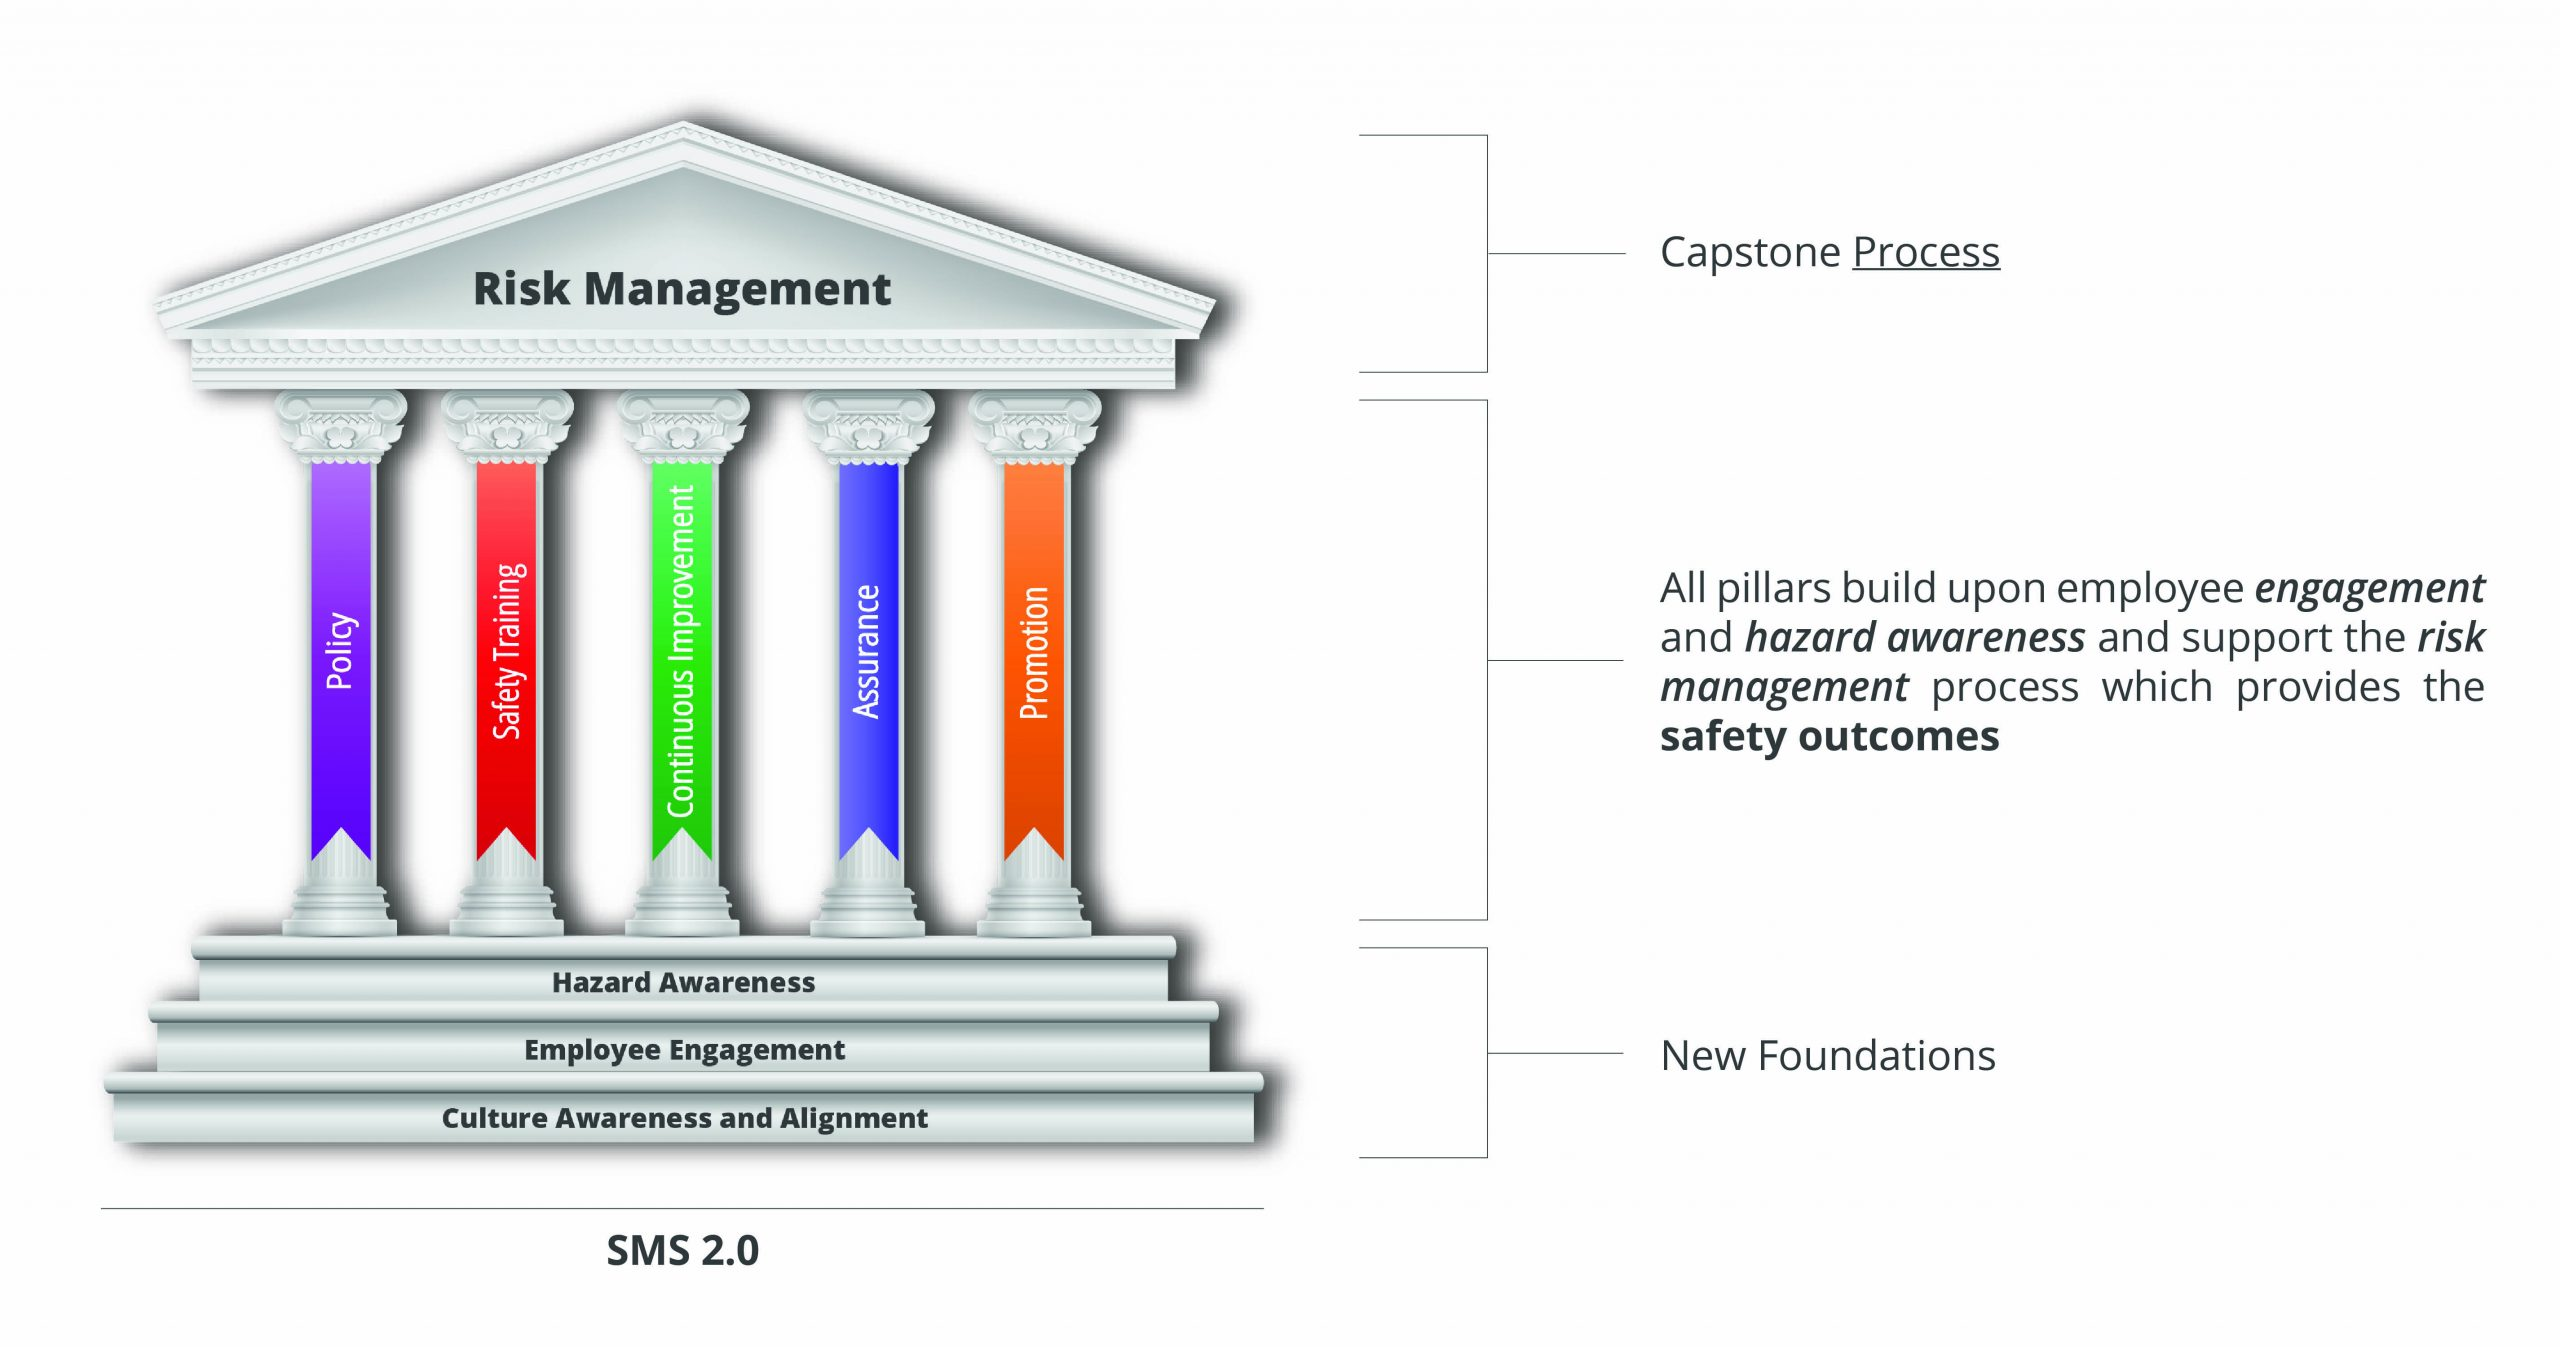 Risk Management Pillars with Labels